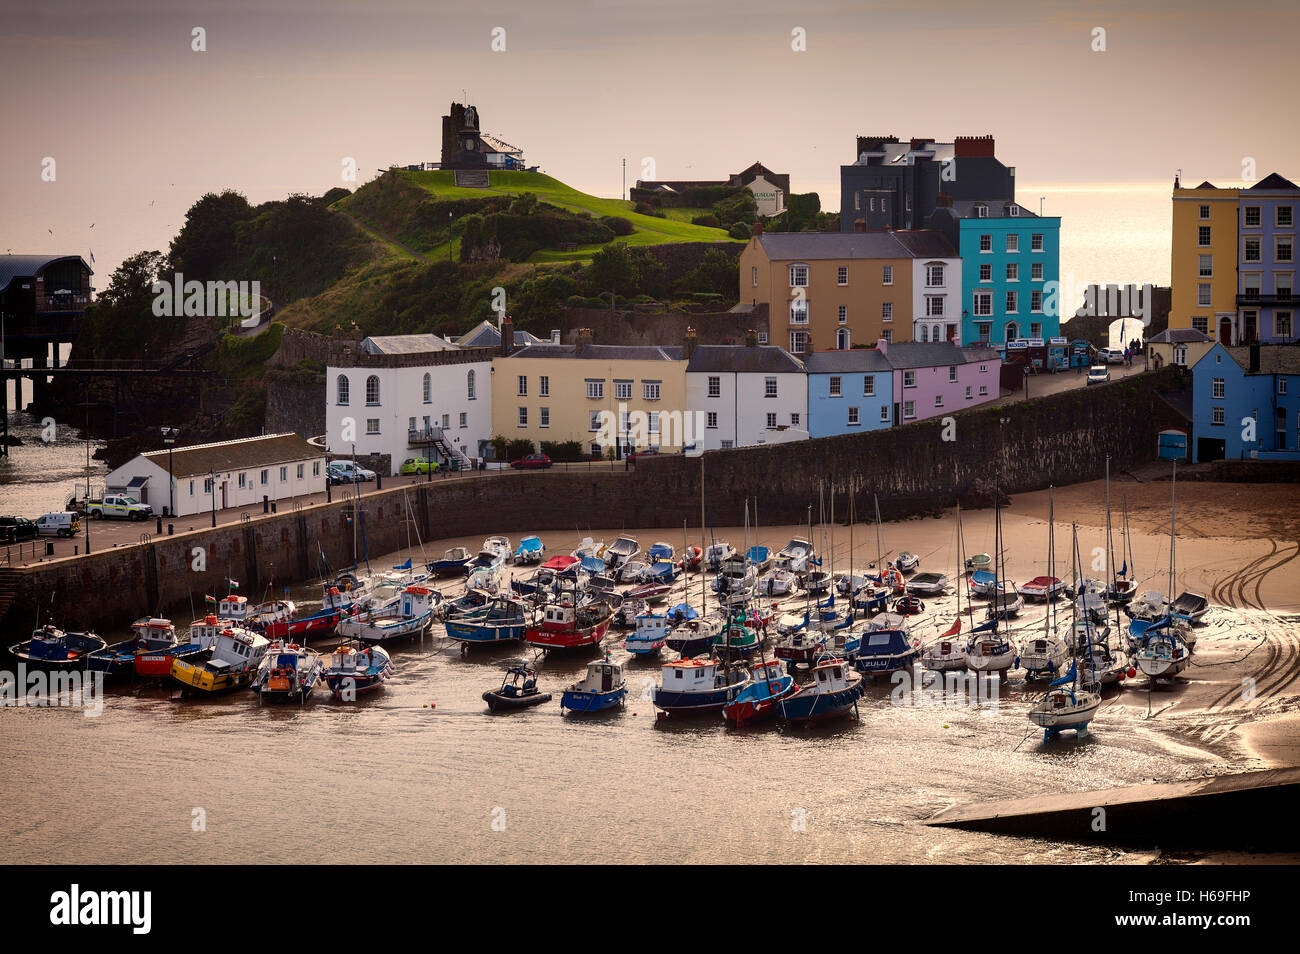 The Harbour and Castle Hill in Tenby a seaside town on the western side of Carmarthen Bay, Pembrokeshire, West Wales, - Stock Image